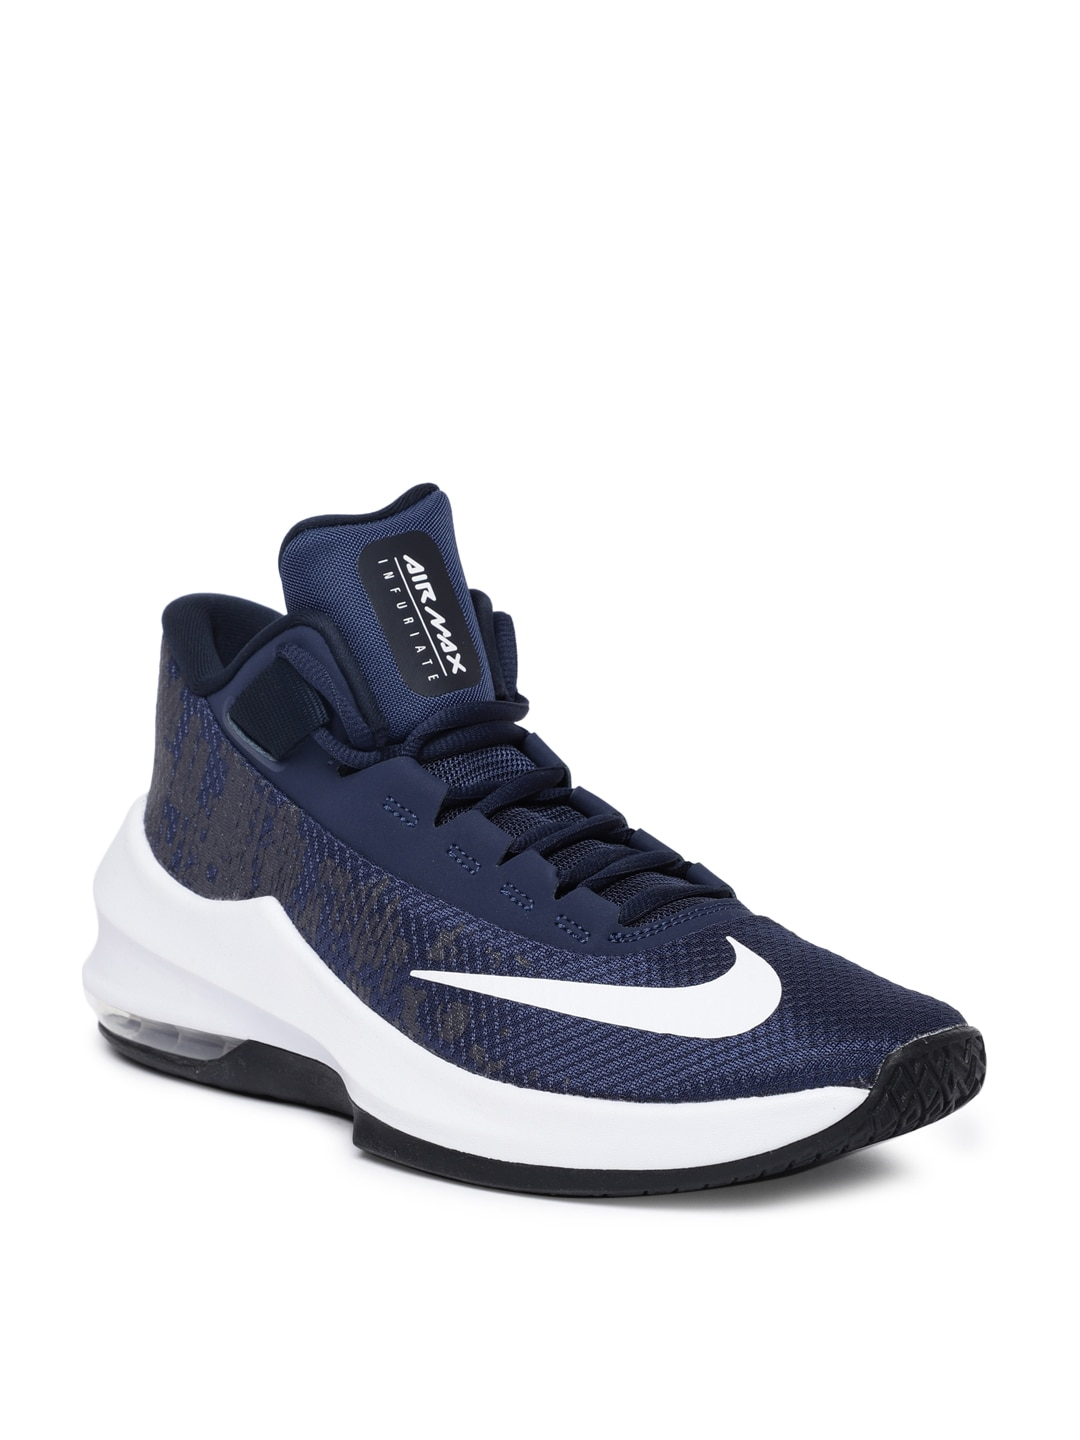 2f878df080b1 Nike Air Max Shoes - Buy Nike Air Max Shoes Online for Men   Women